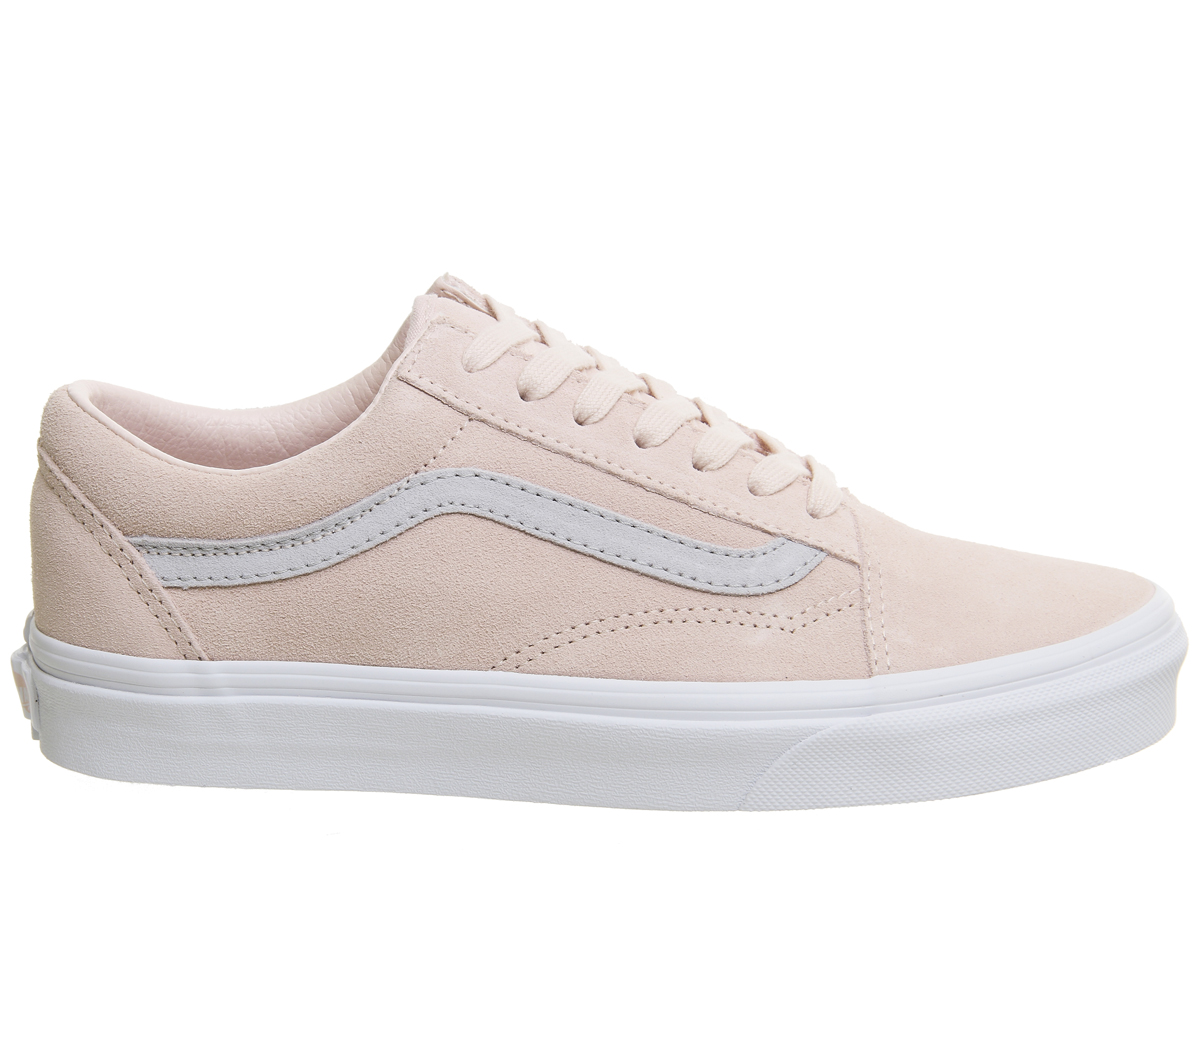 4908a6bc46d Mens Vans Old Skool Trainers PALE PINK GREY EXCLUSIVE Trainers Shoes ...